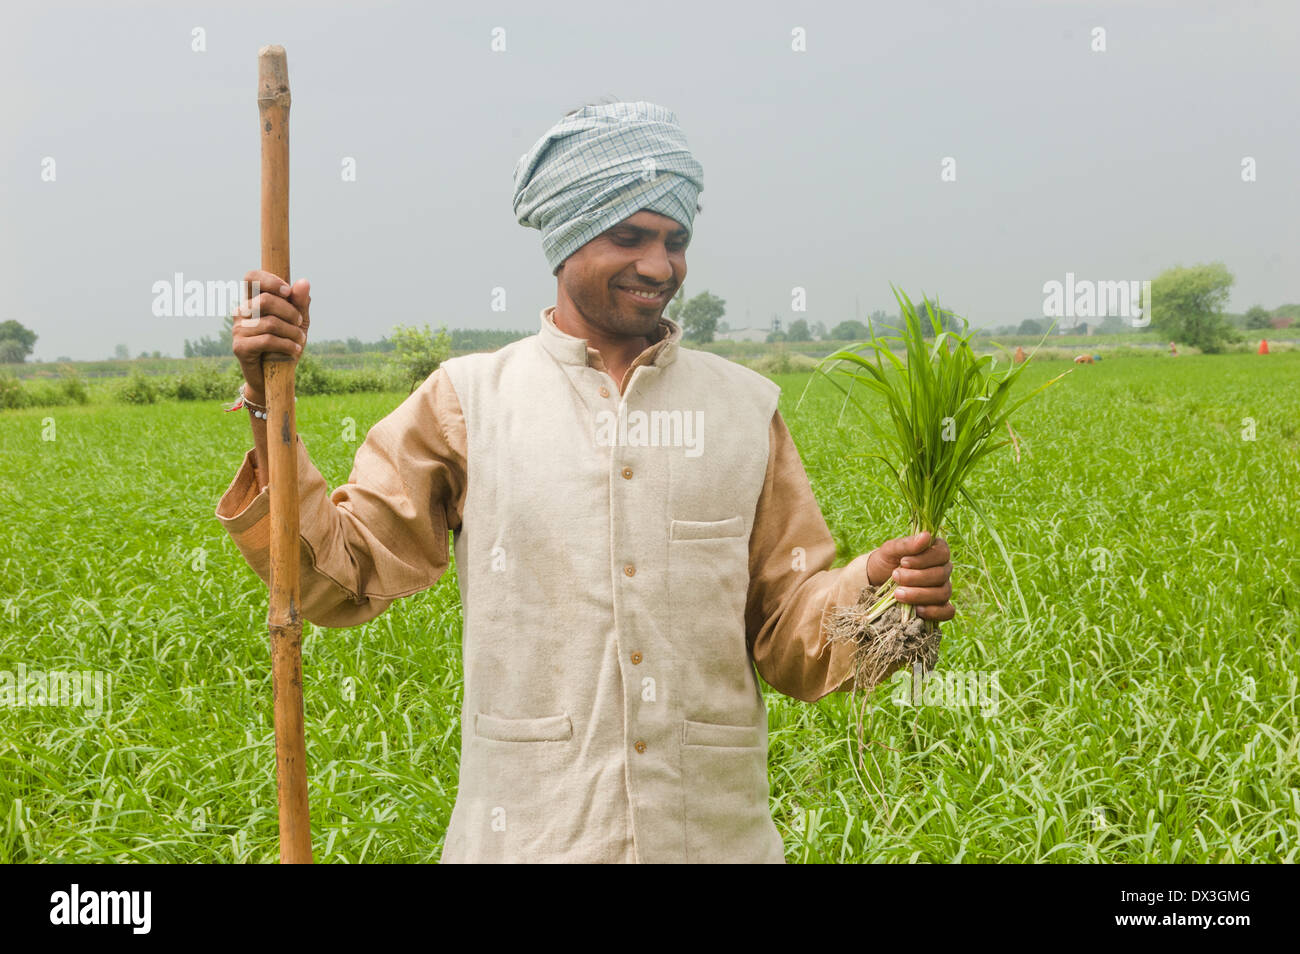 1 Indian Farmer Standing in Field Stock Photo, Royalty ...